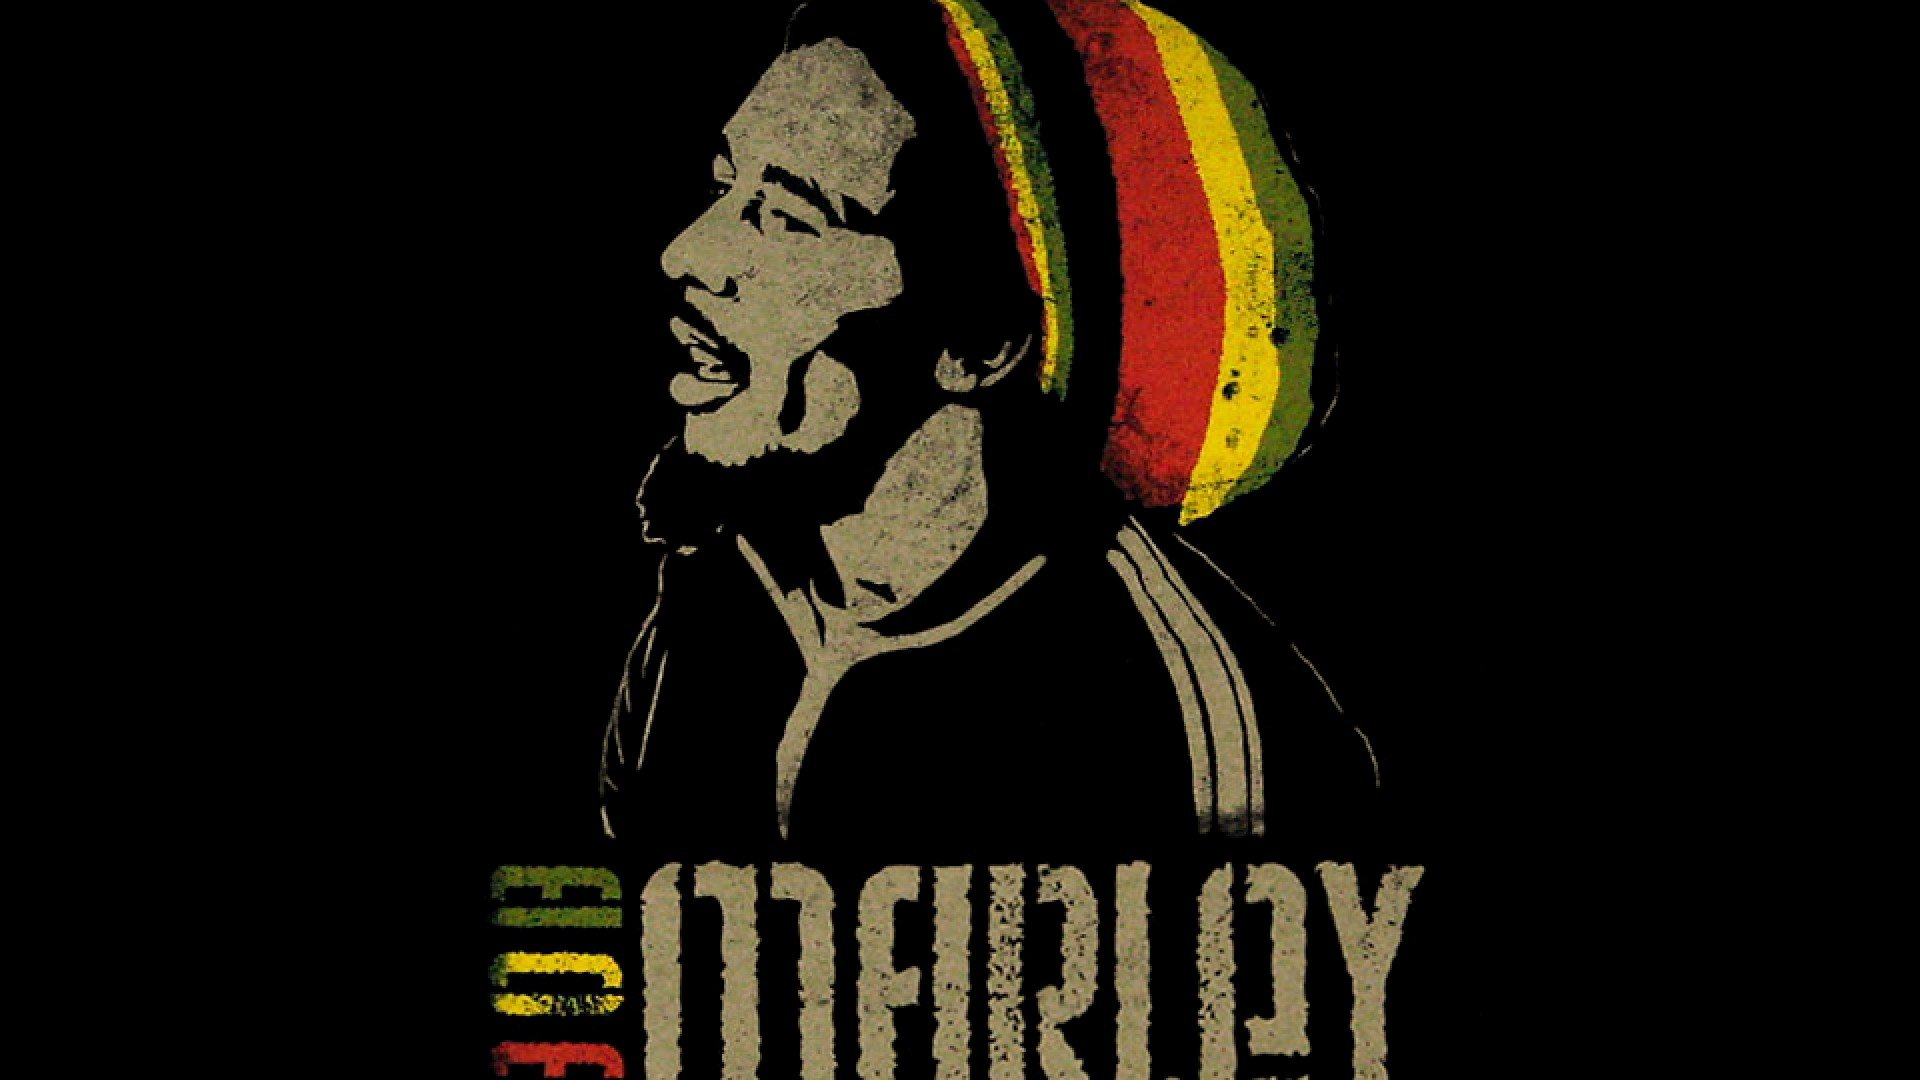 Bob Marley Rasta Wallpaper